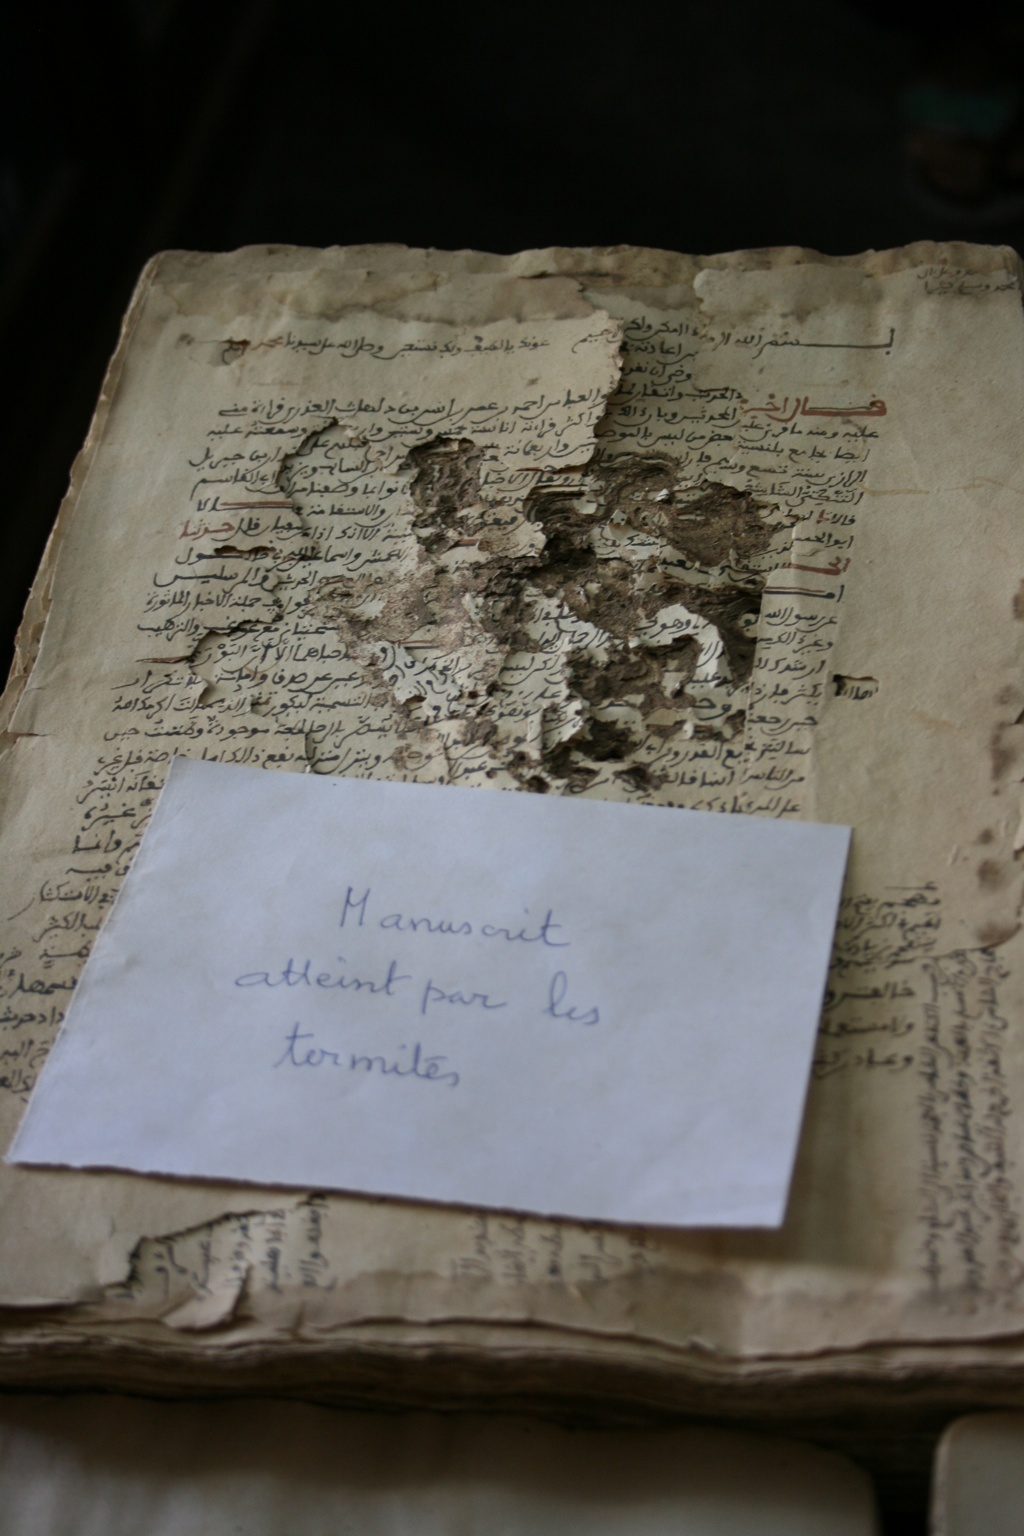 Timbuktu preserves historic manuscripts